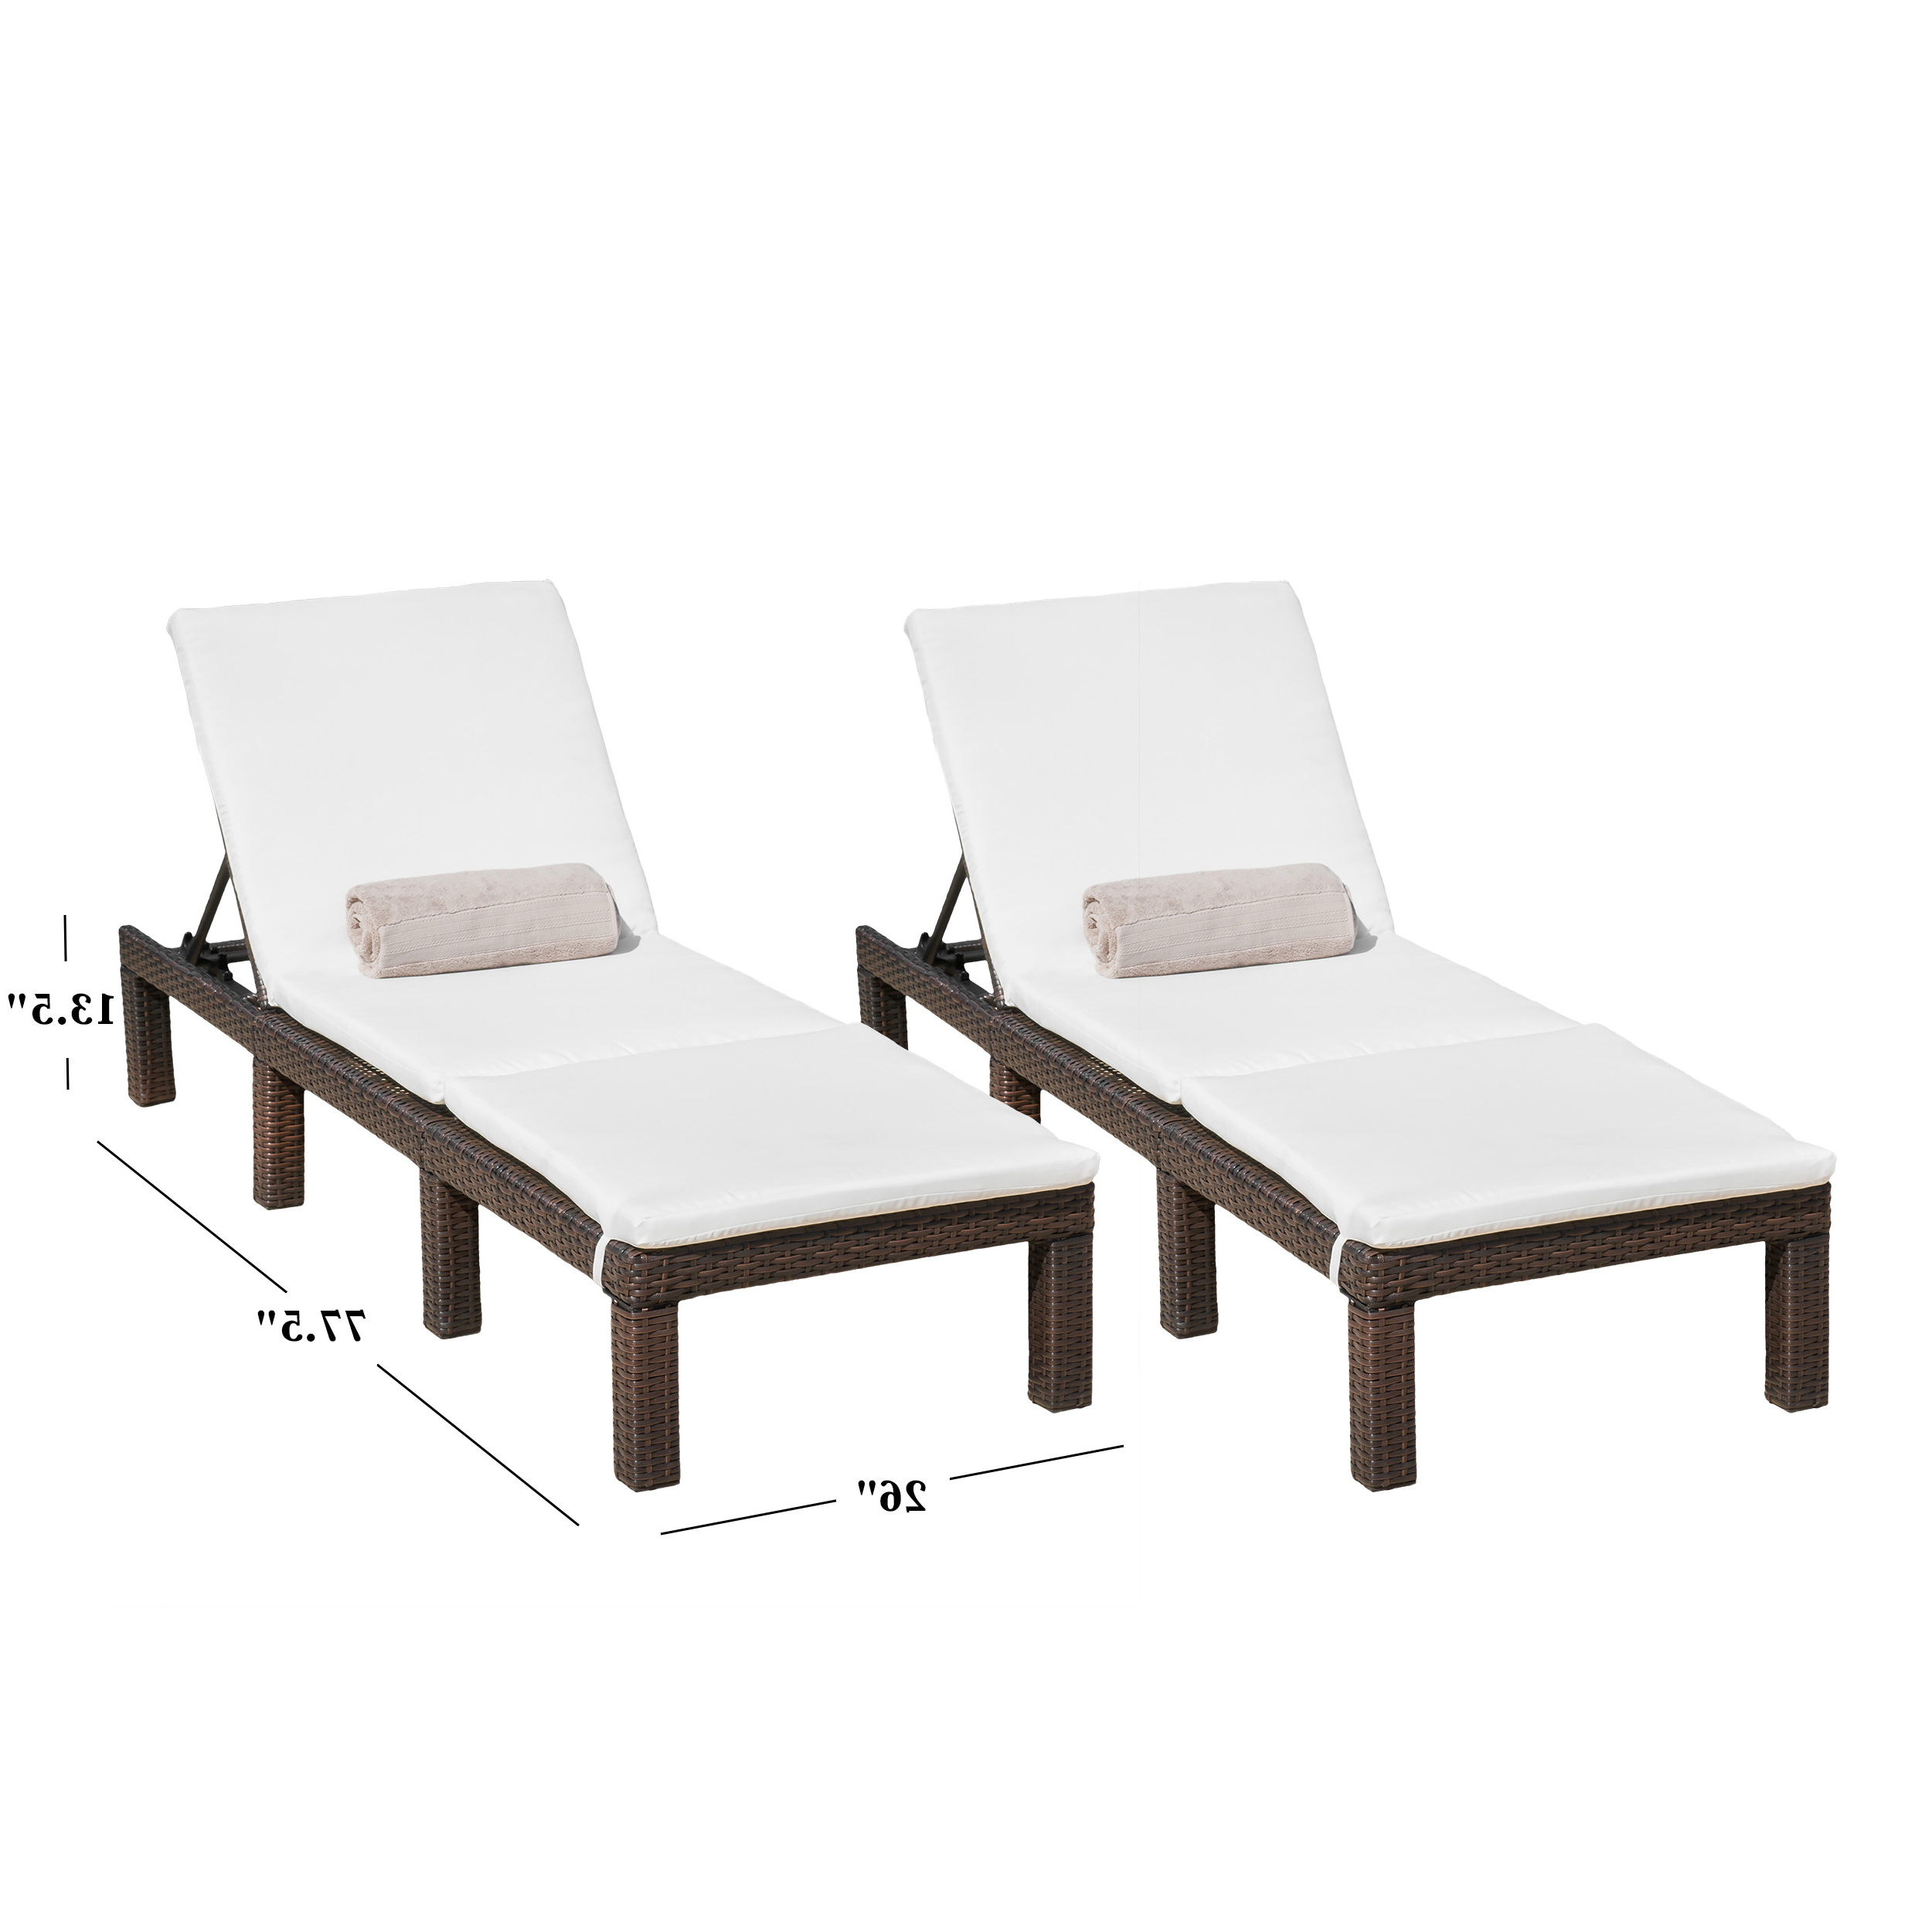 Outdoor Wicker Adjustable Chaise Lounges With Cushions Within Most Popular Aspen Outdoor Wicker Adjustable Chaise Lounges With Cushions (Set Of 2) (View 16 of 25)